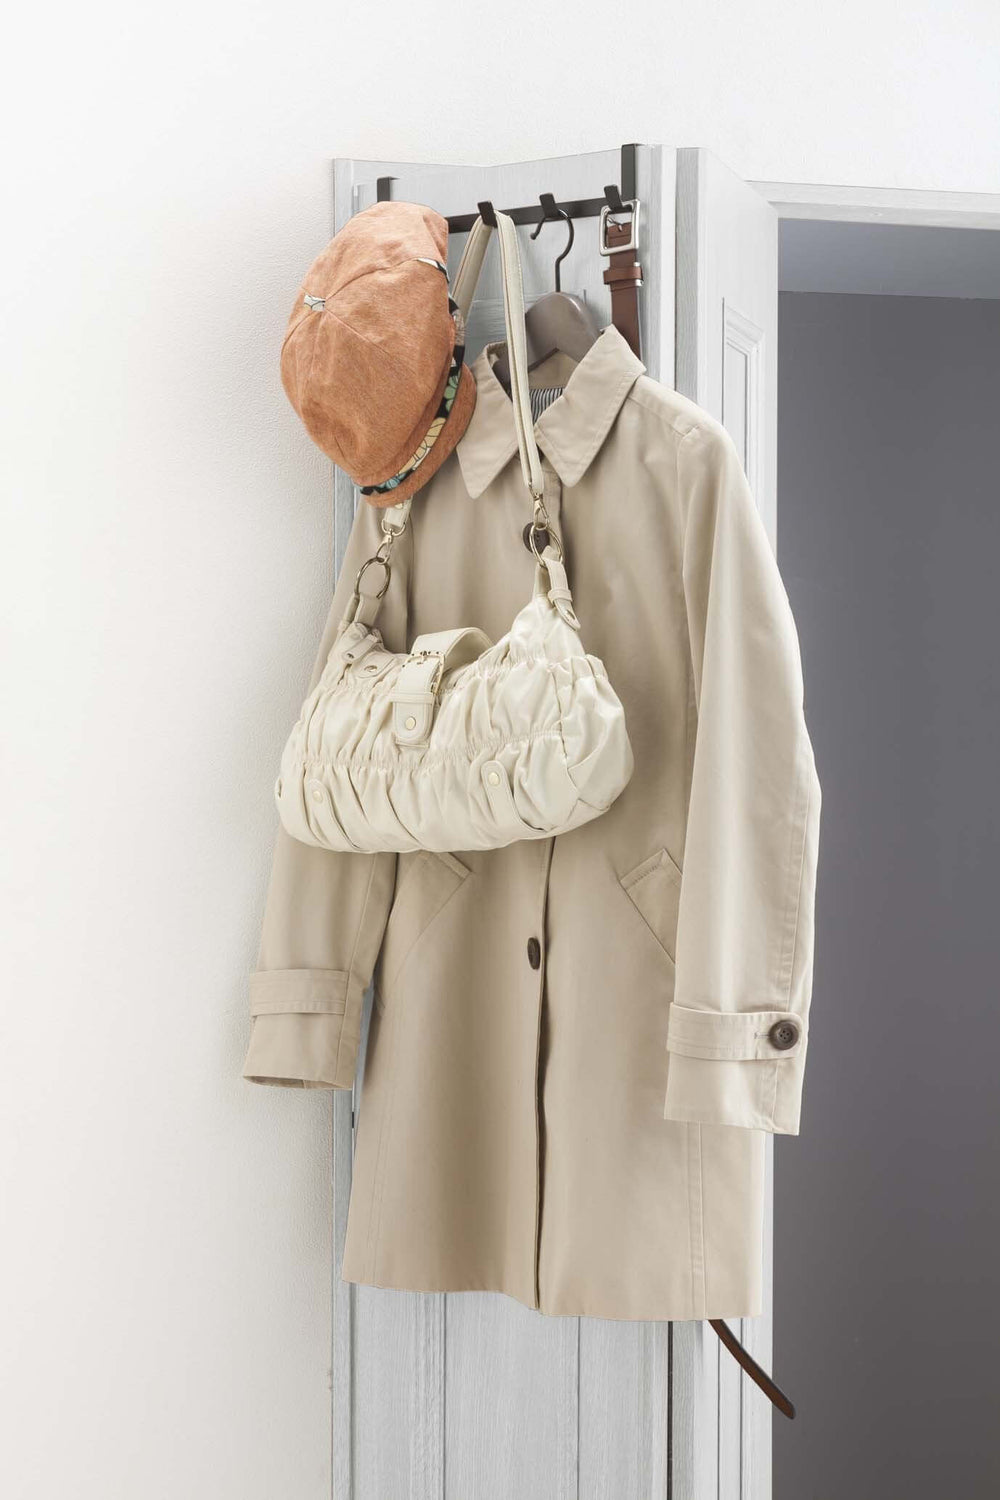 Yamazaki's wide over-door hook with five hooks hanging on a door and holding handbag and coat